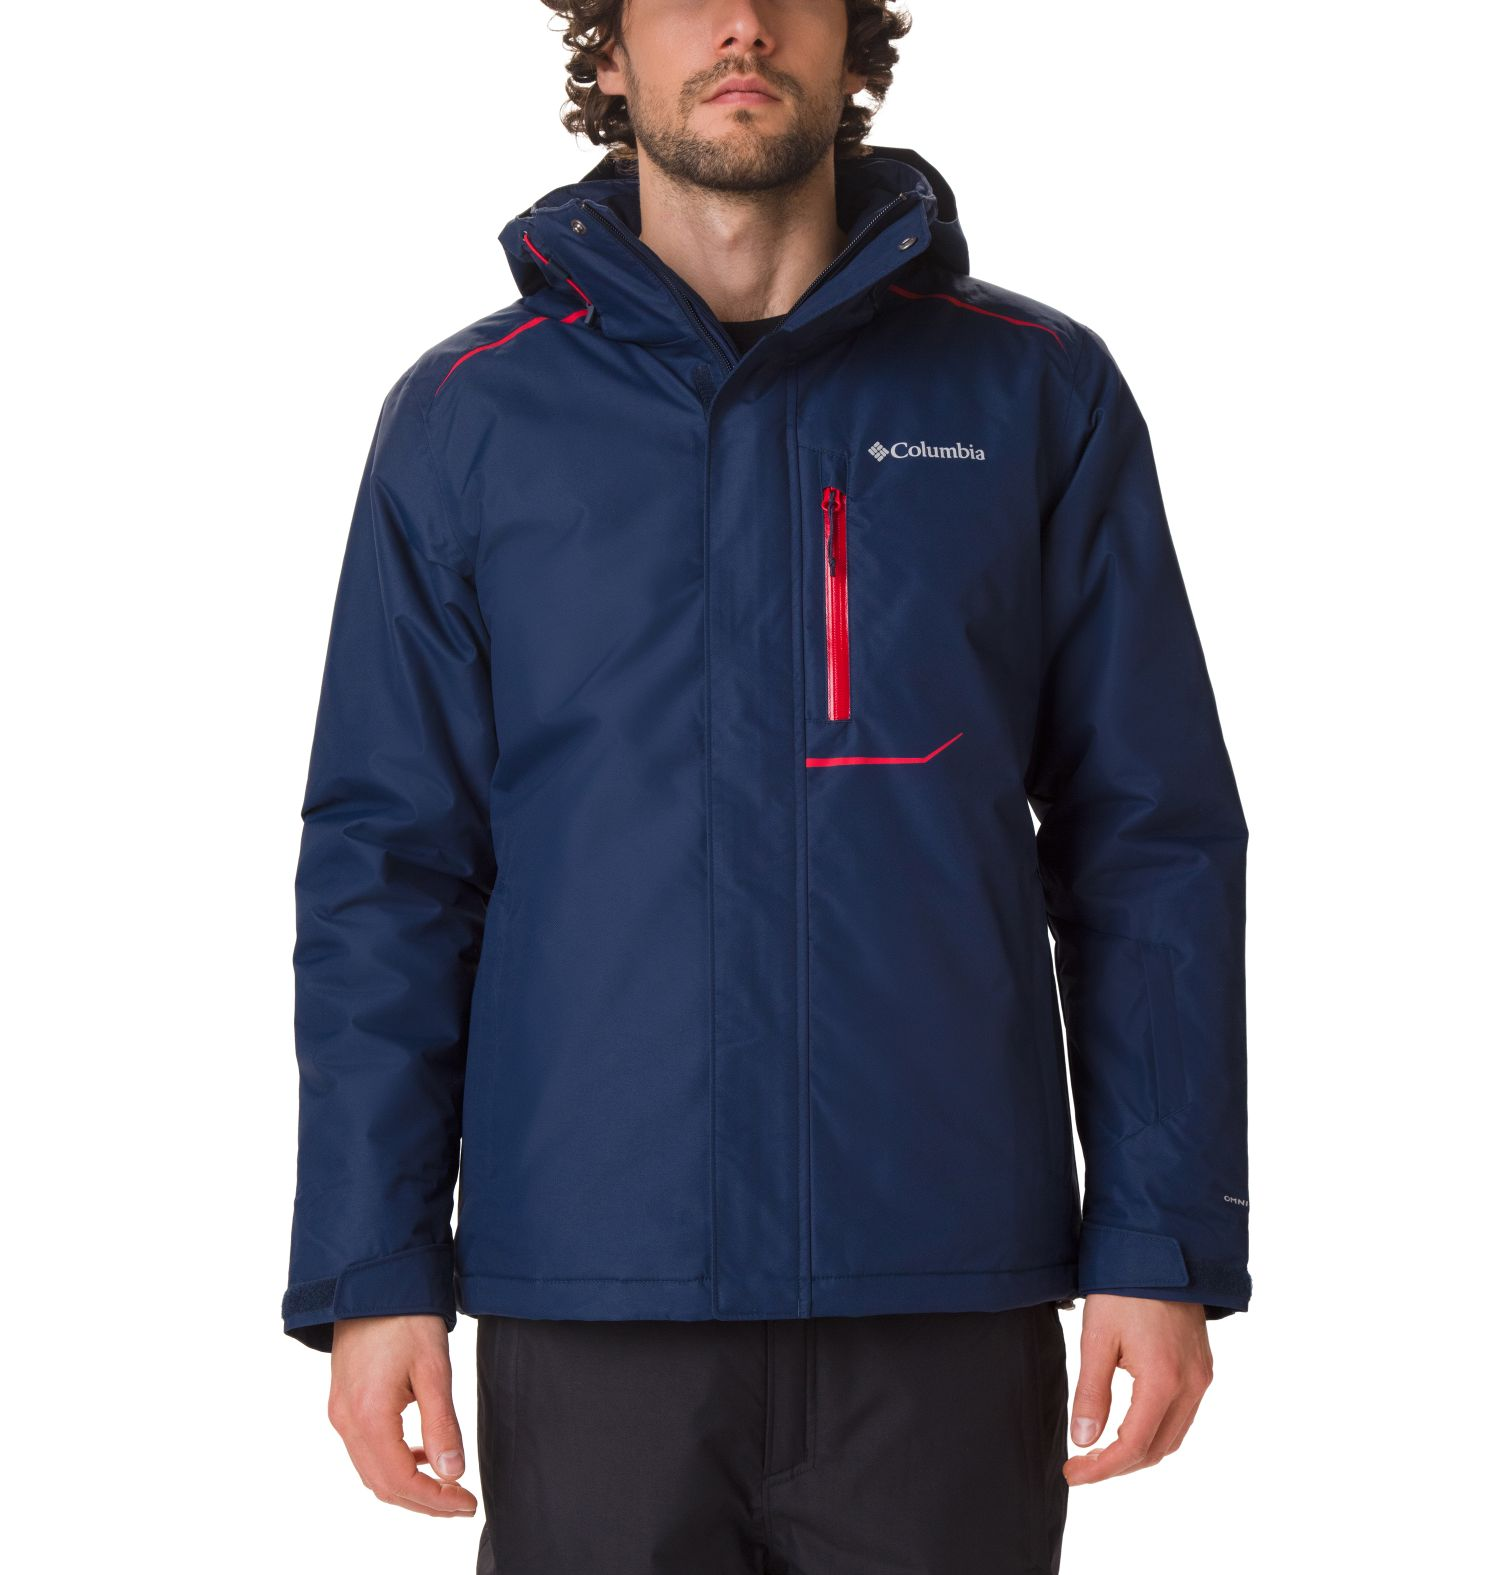 CHAQUETON RIDE ON 100GR MICROTEMP XF II 100% POLYESTER Omni-TECH WATERPROOF BREATHABLE Omni-HEAT REFLECTIVE COLLEGIATE NAVY/MOUNTAIN RED